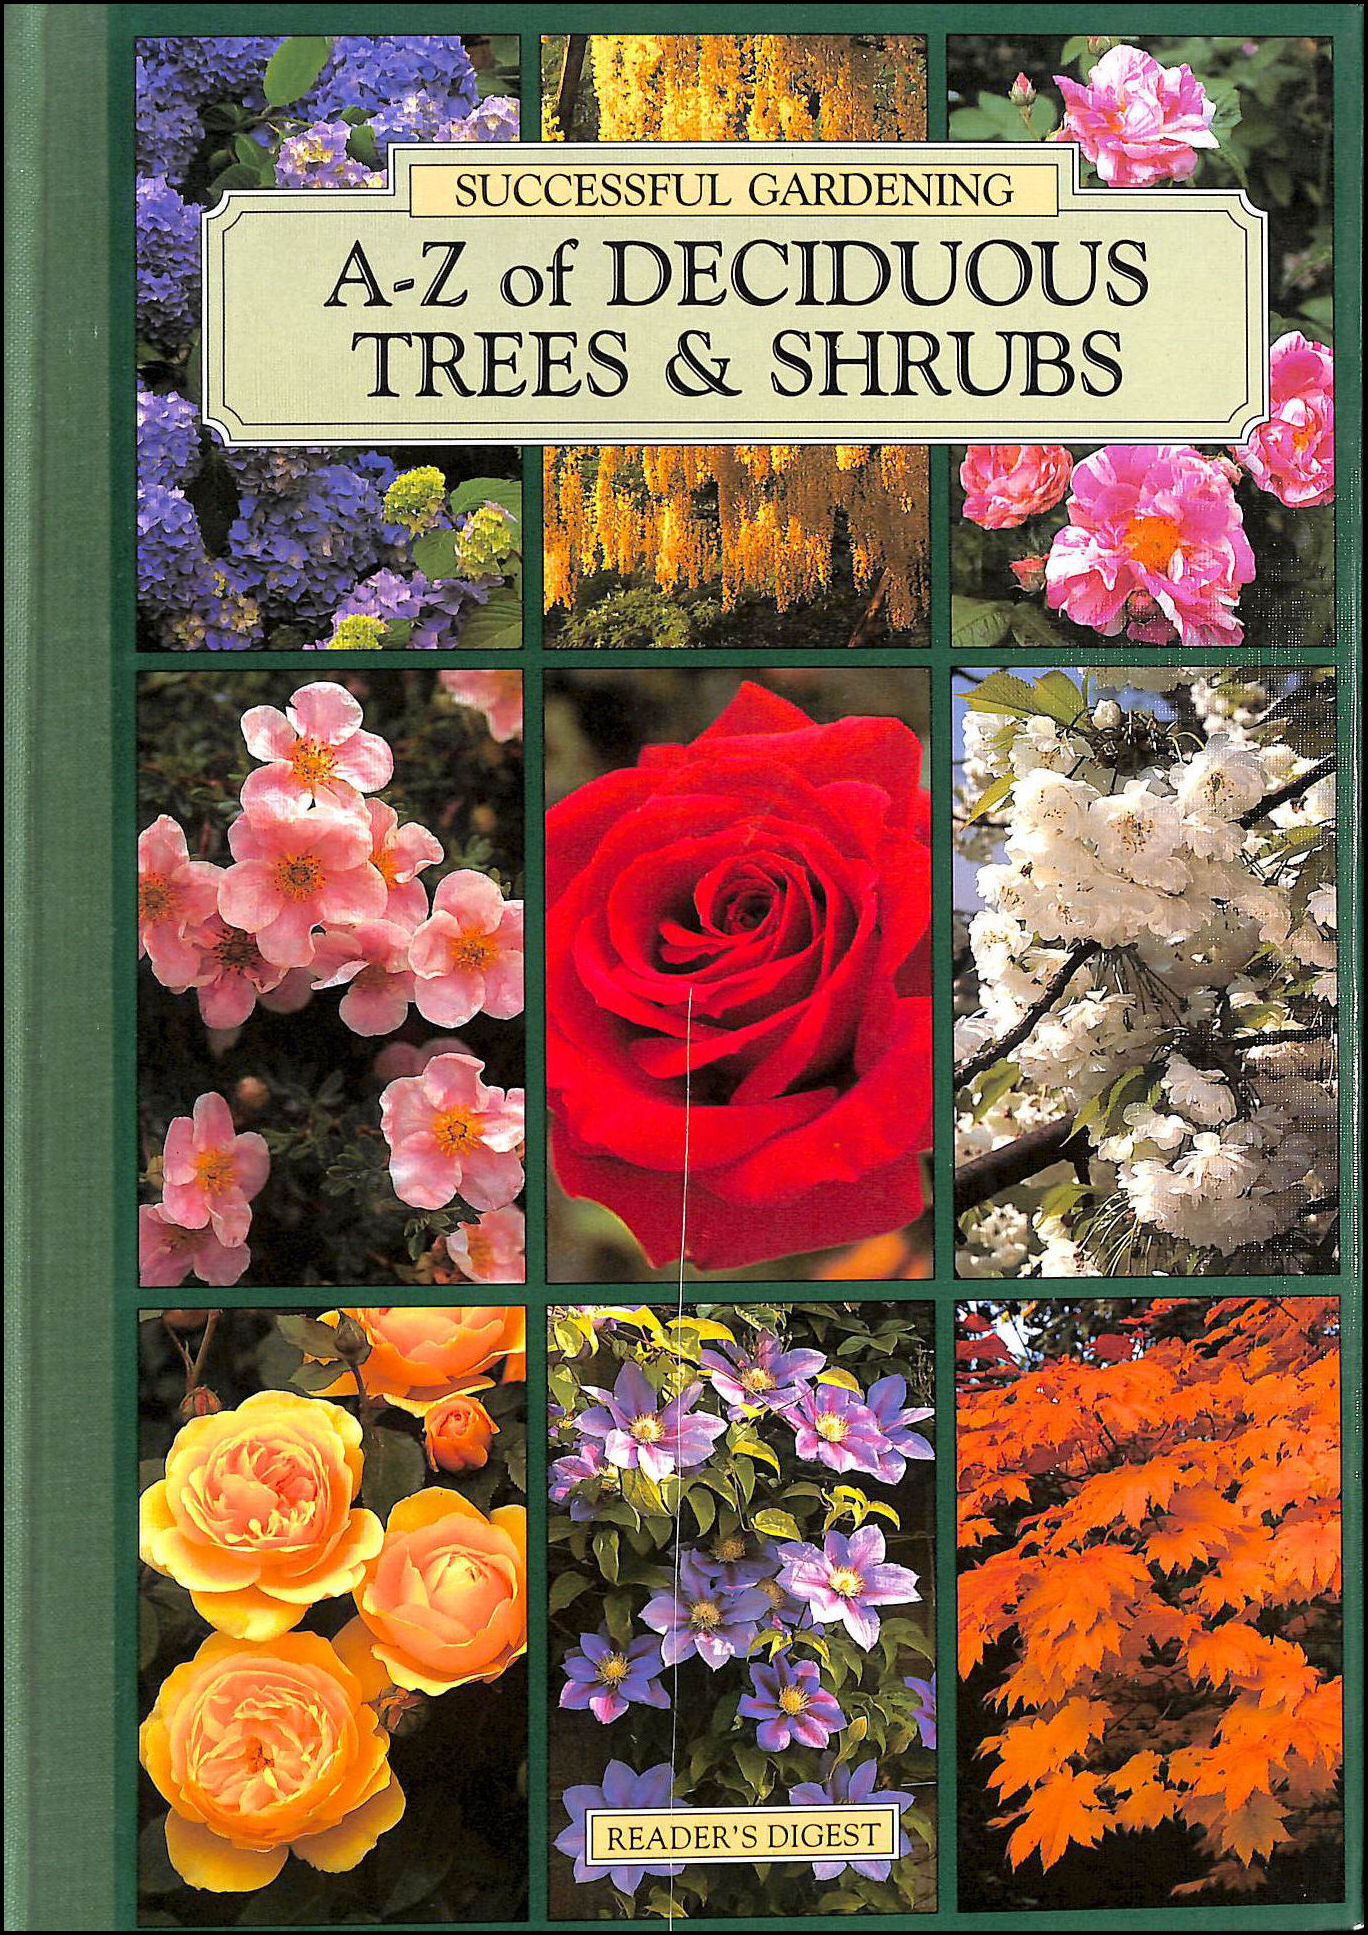 A-Z of deciduous trees & shrubs